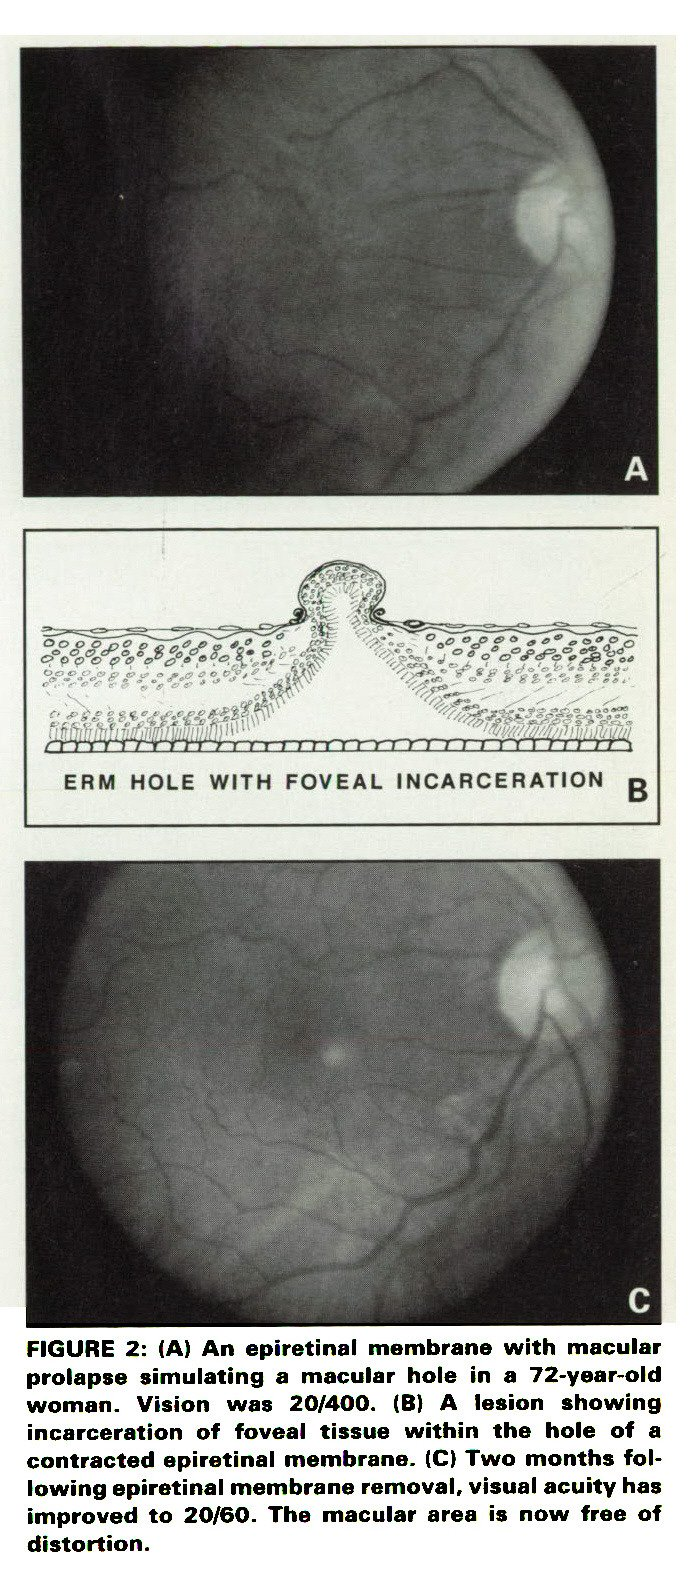 FIGURE 2 A An Epiretinal Membrane With Macular Prolapse Simulating Hole